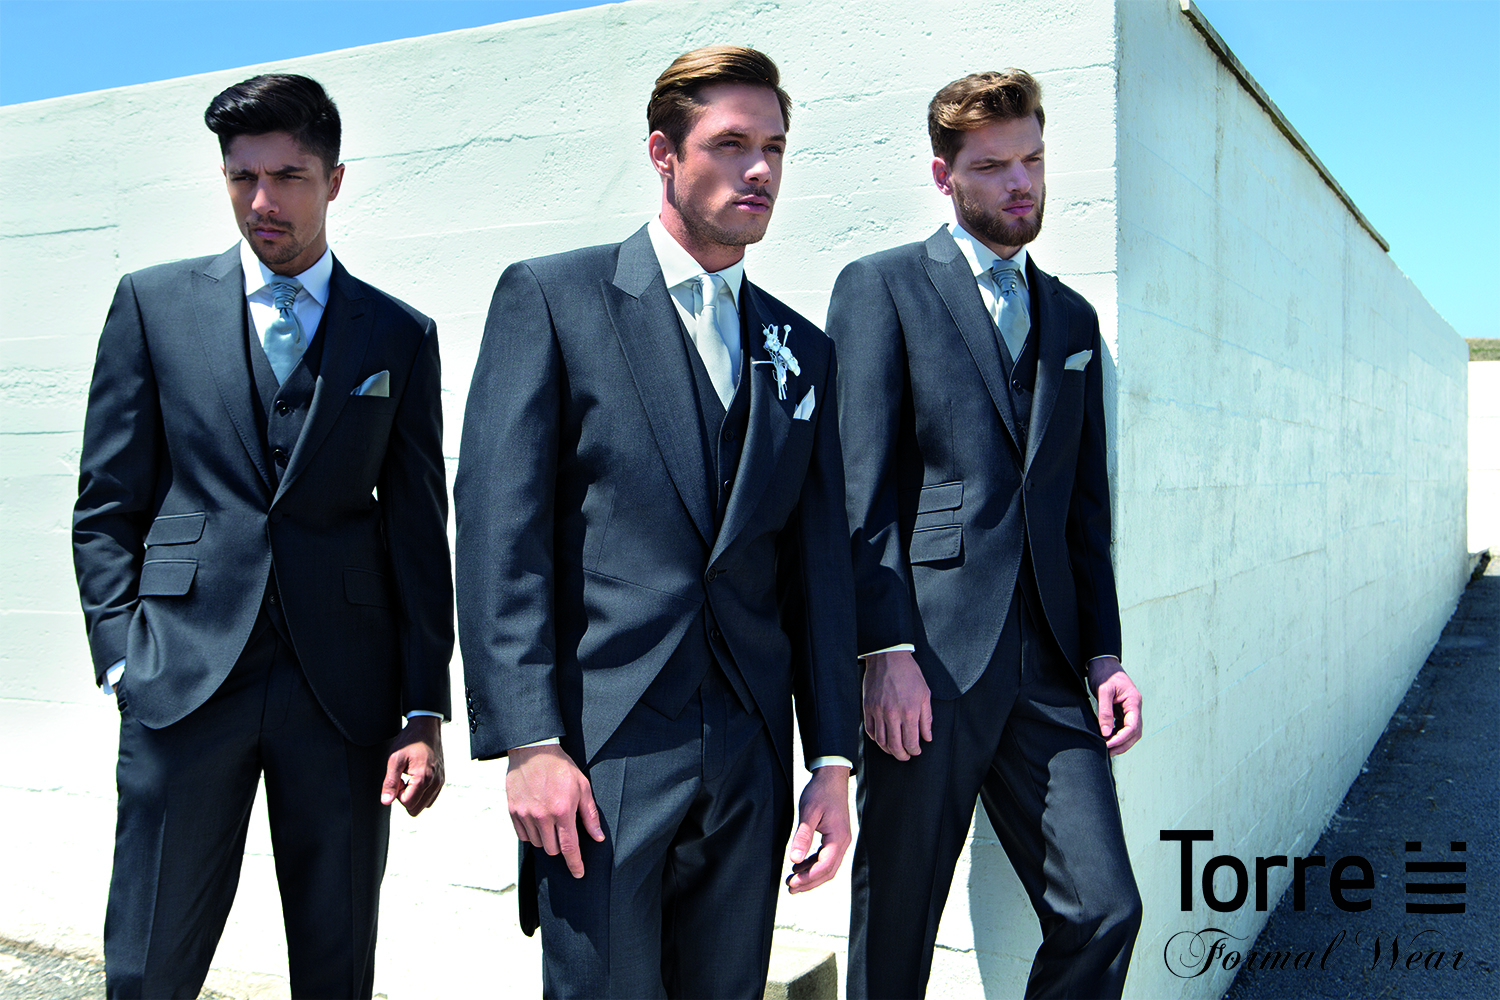 Charcoal Tails or slimfit lounge suit. Hire package from £120. Hire package includes Jacket, Trousers, waistcoat, shirt, neckwear, handkerchief & accidental insurance. Available to purchase from £499